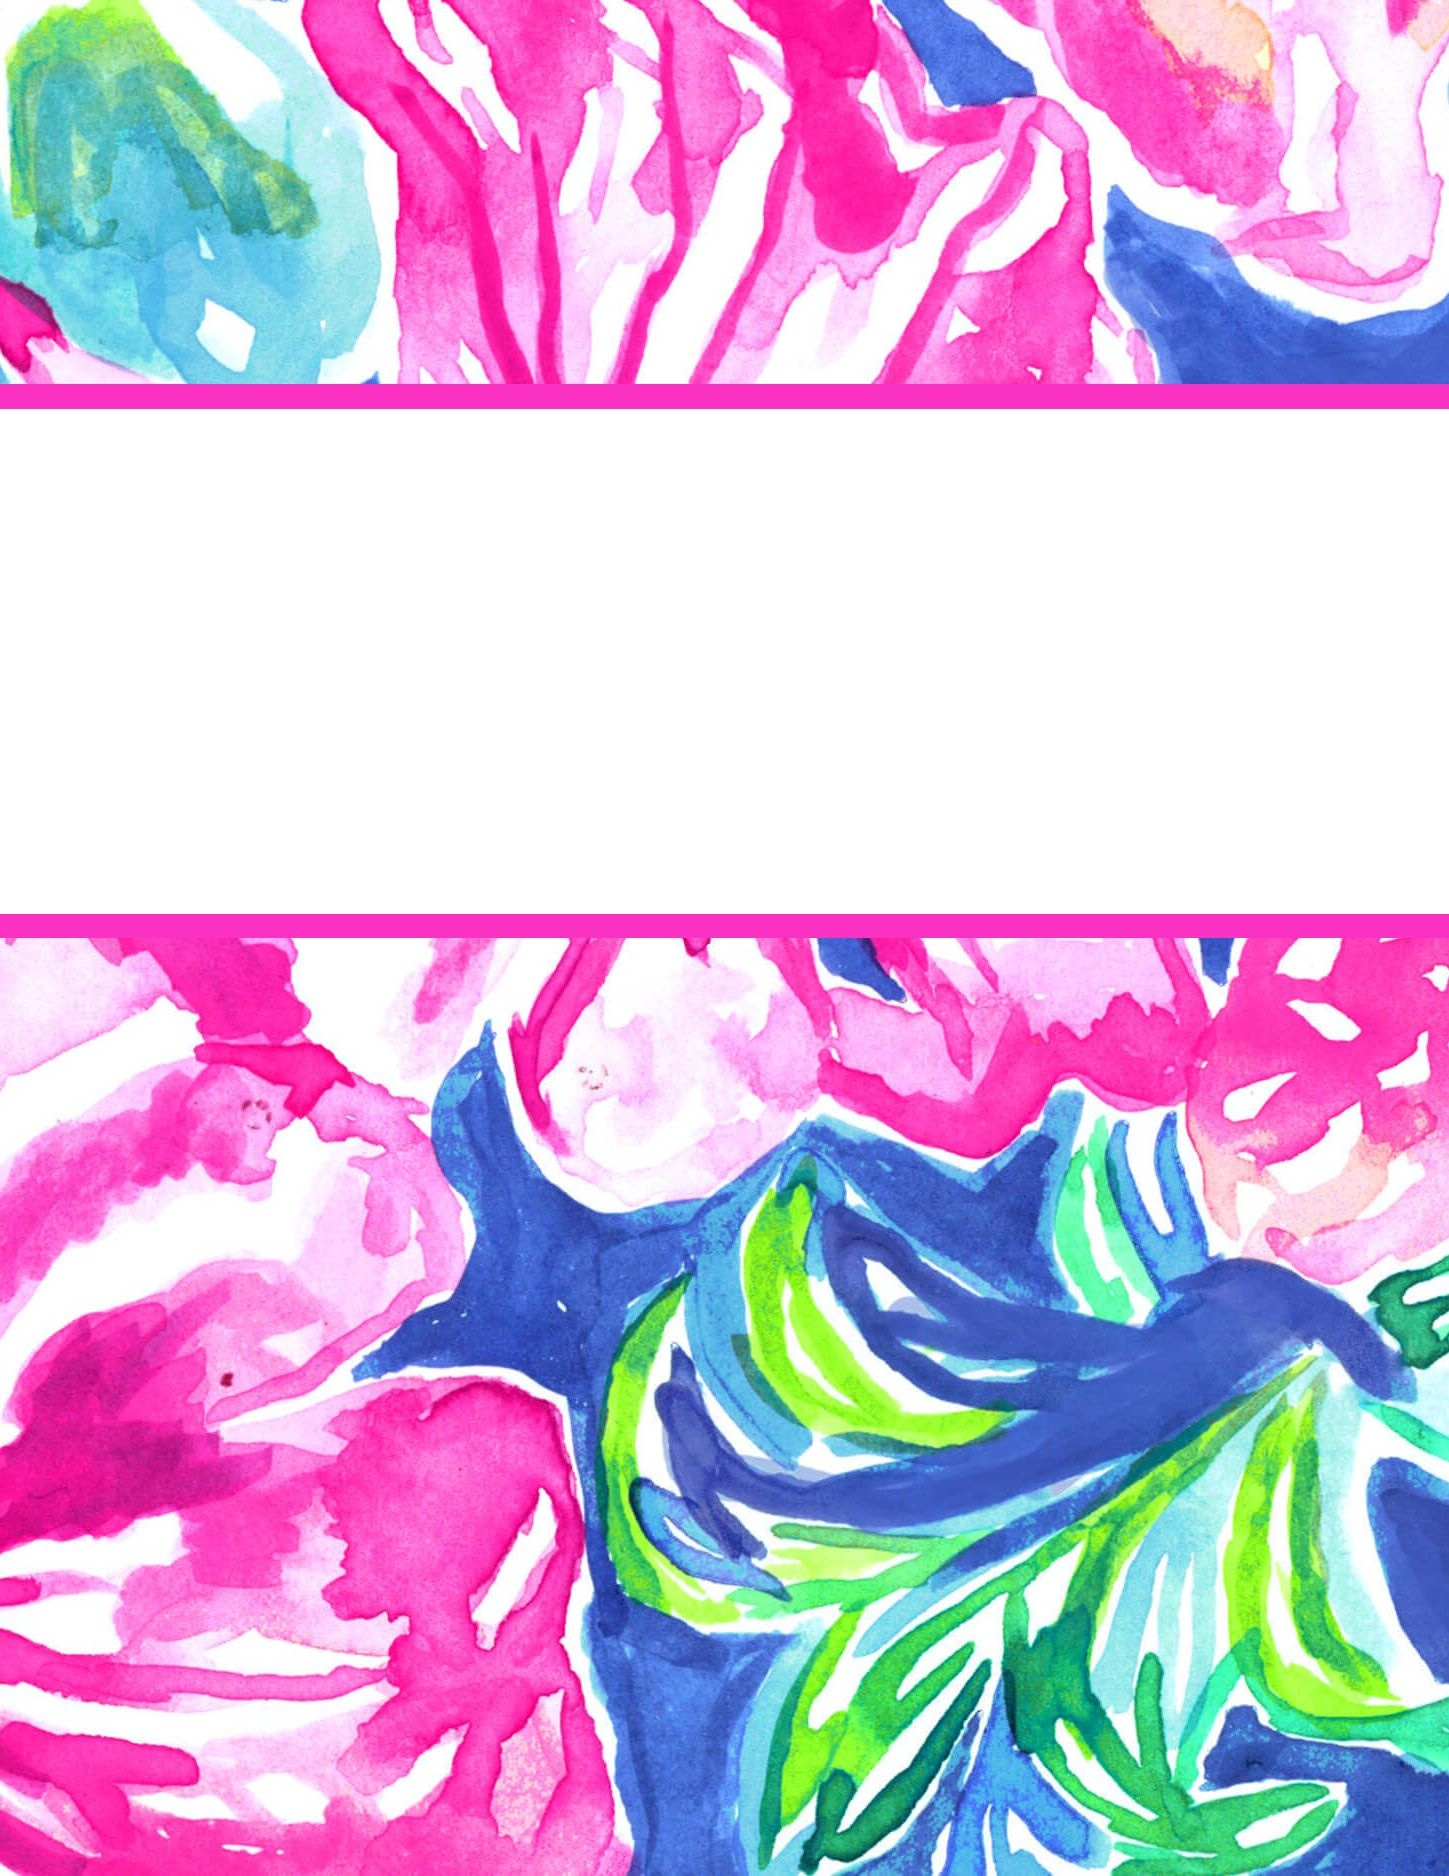 Free Printable Preppy Lilly Pulitzer Binder Covers   College Student - Free Printable School Binder Covers